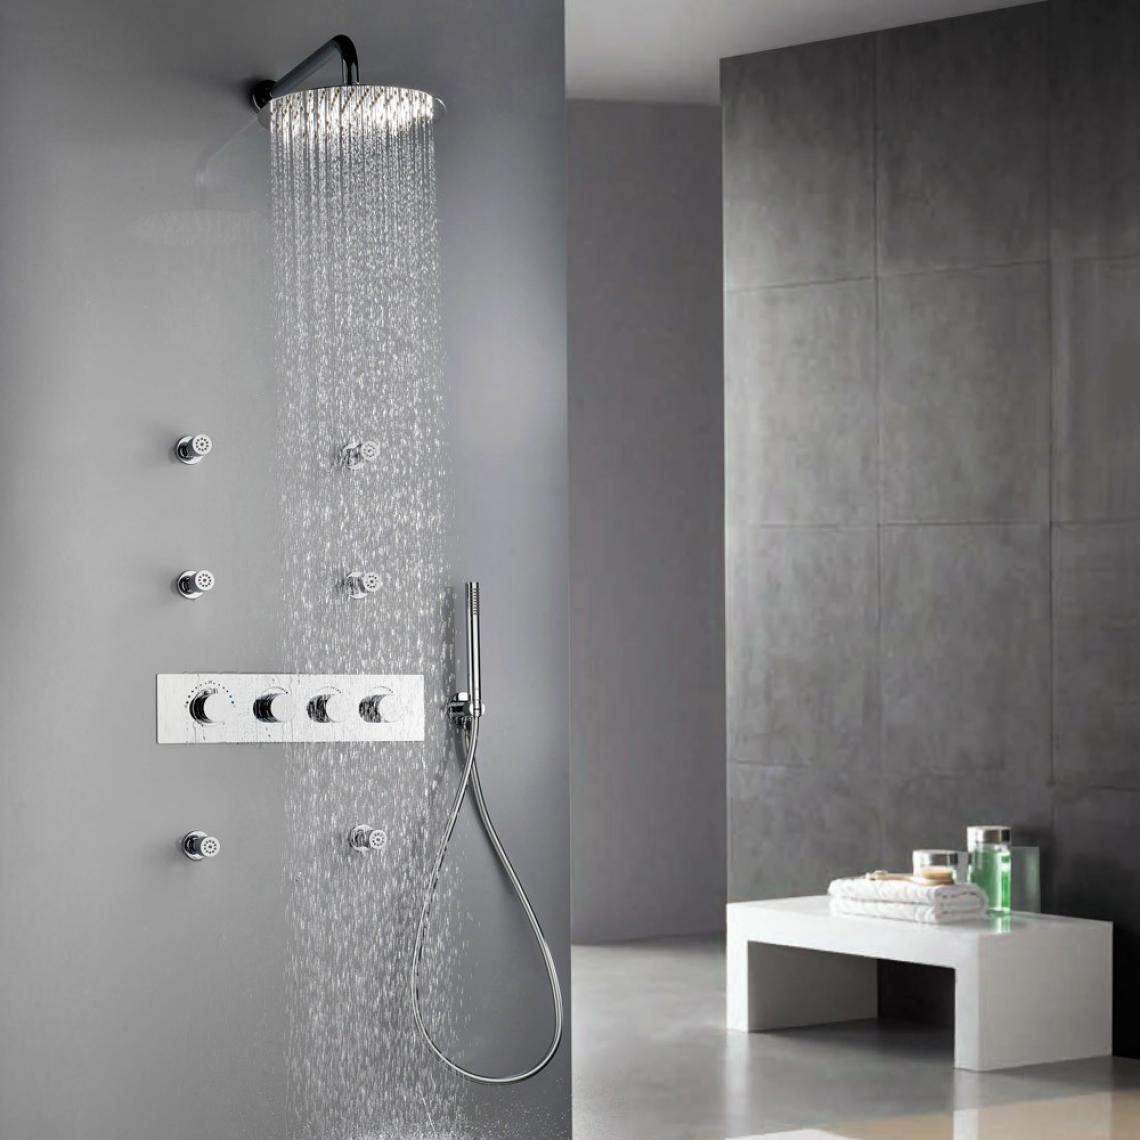 Lookshop Ensemble de douche thermostatique contemporaine avec six jets vaporisateurs 250 mm